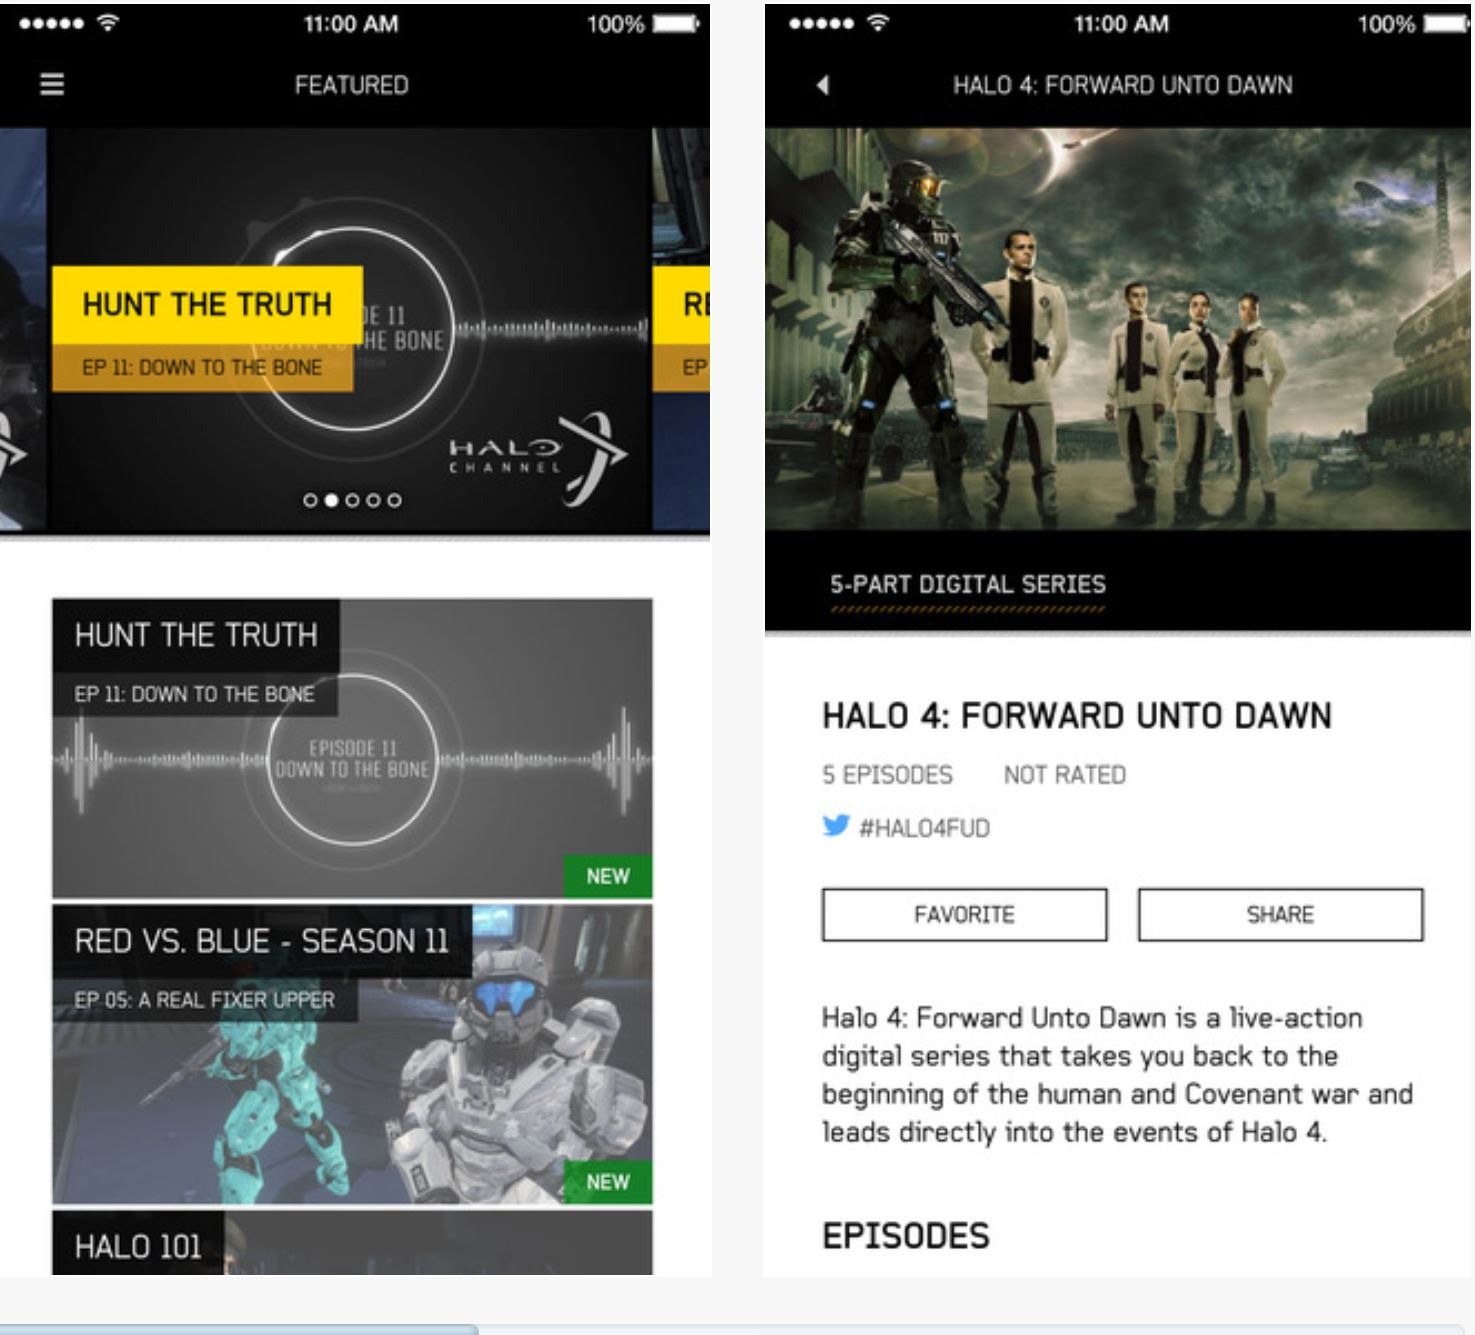 Halo Channel iOS Android App